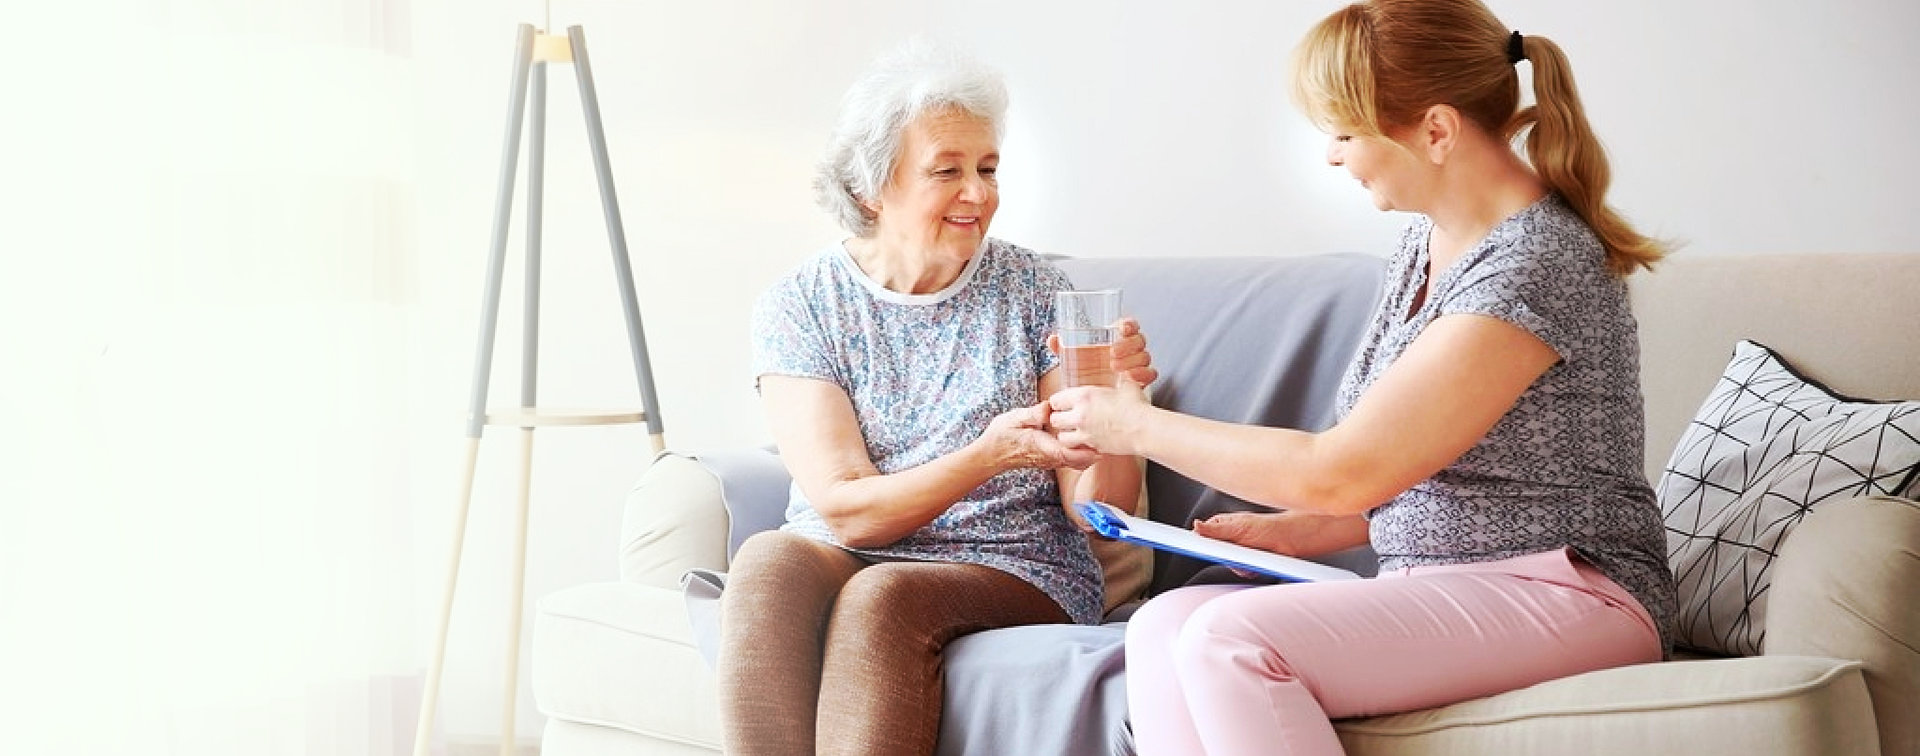 adult woman give a glass of water to senior woman